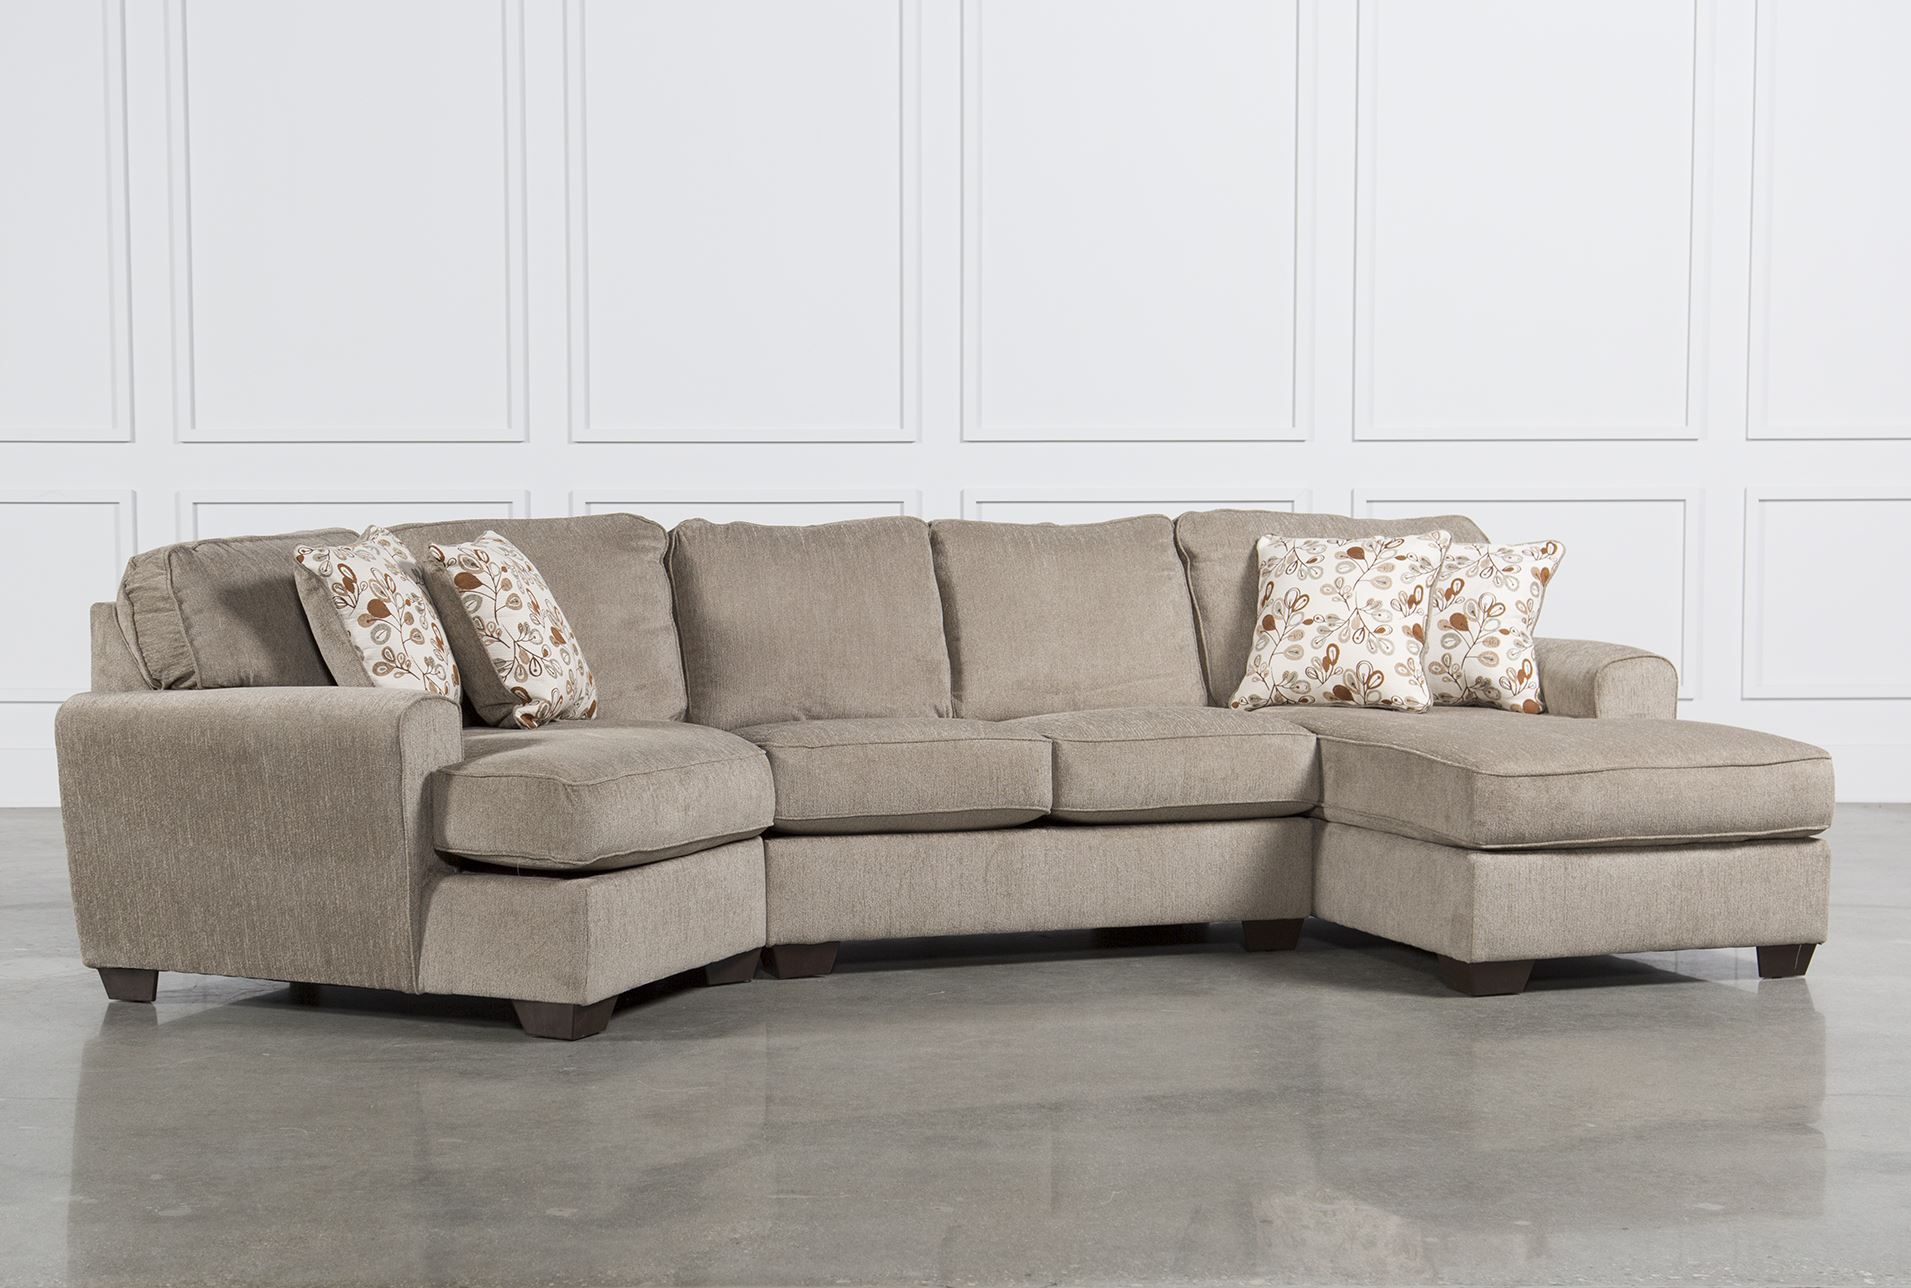 Sectional Sofa Design With Cuddler Chaise Fort